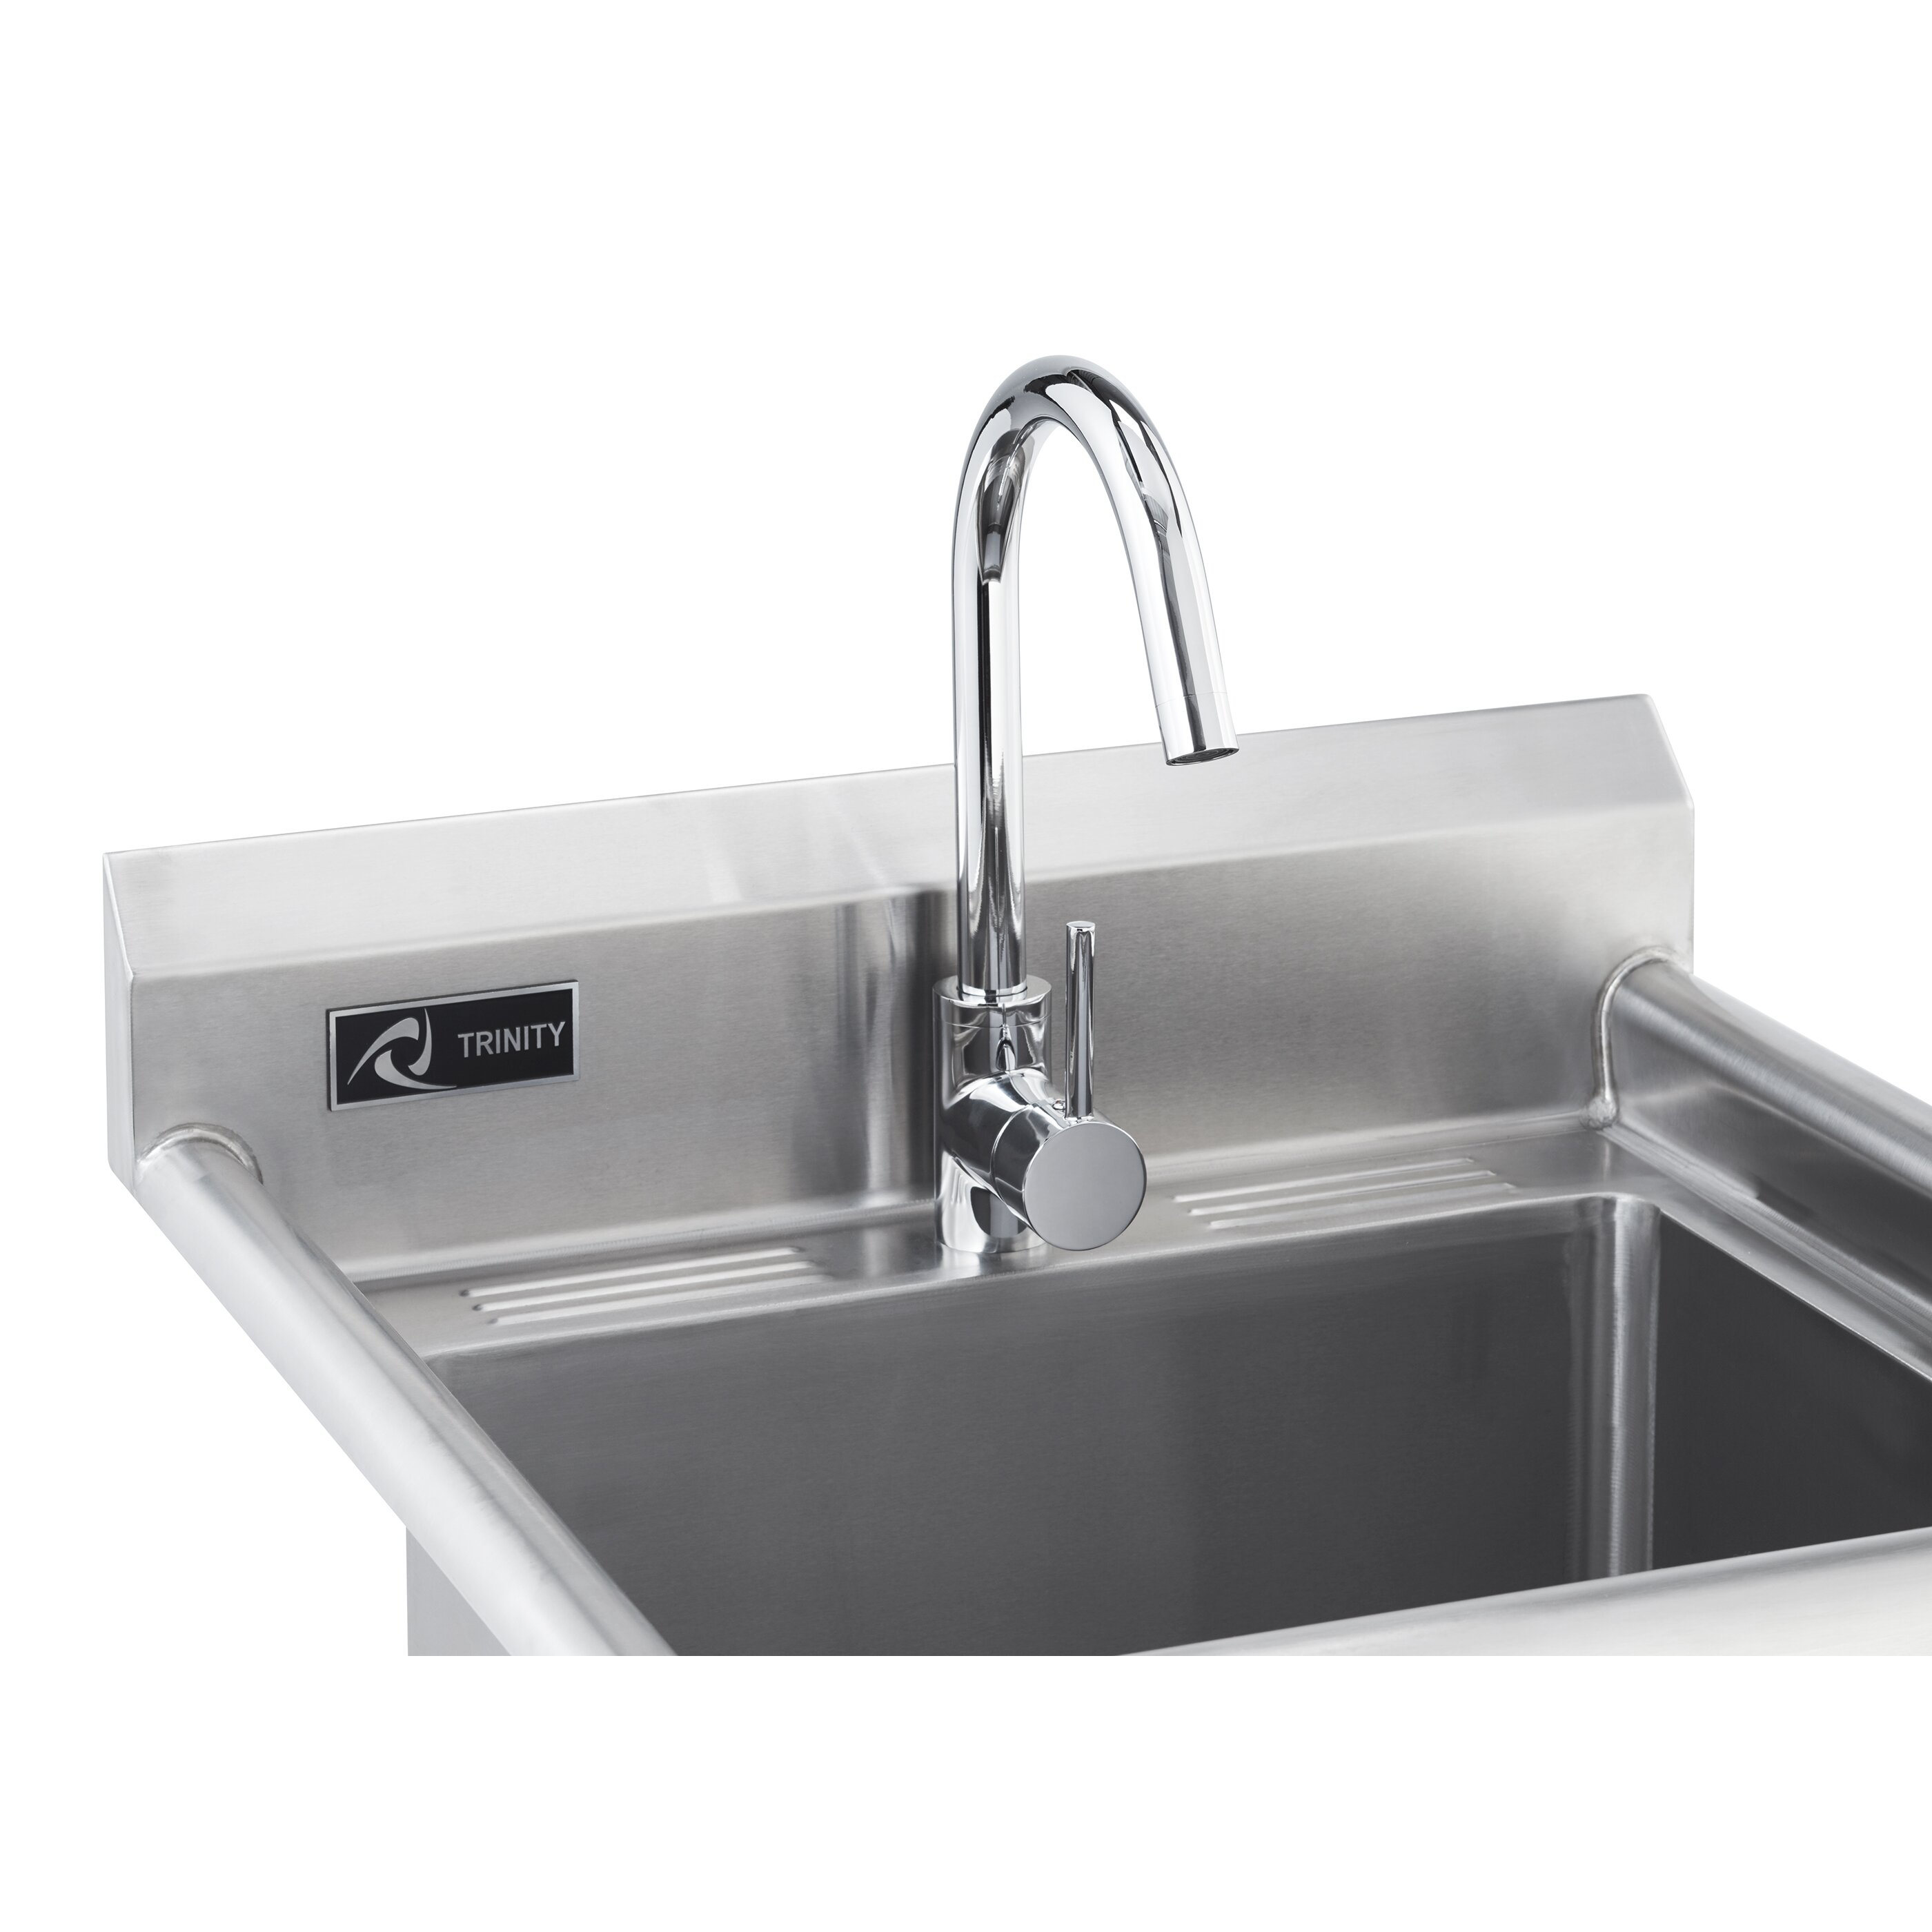 Stainless Steel Sink Suppliers : ... Stainless Steel Utility Sink with Faucet & Reviews Wayfair Supply